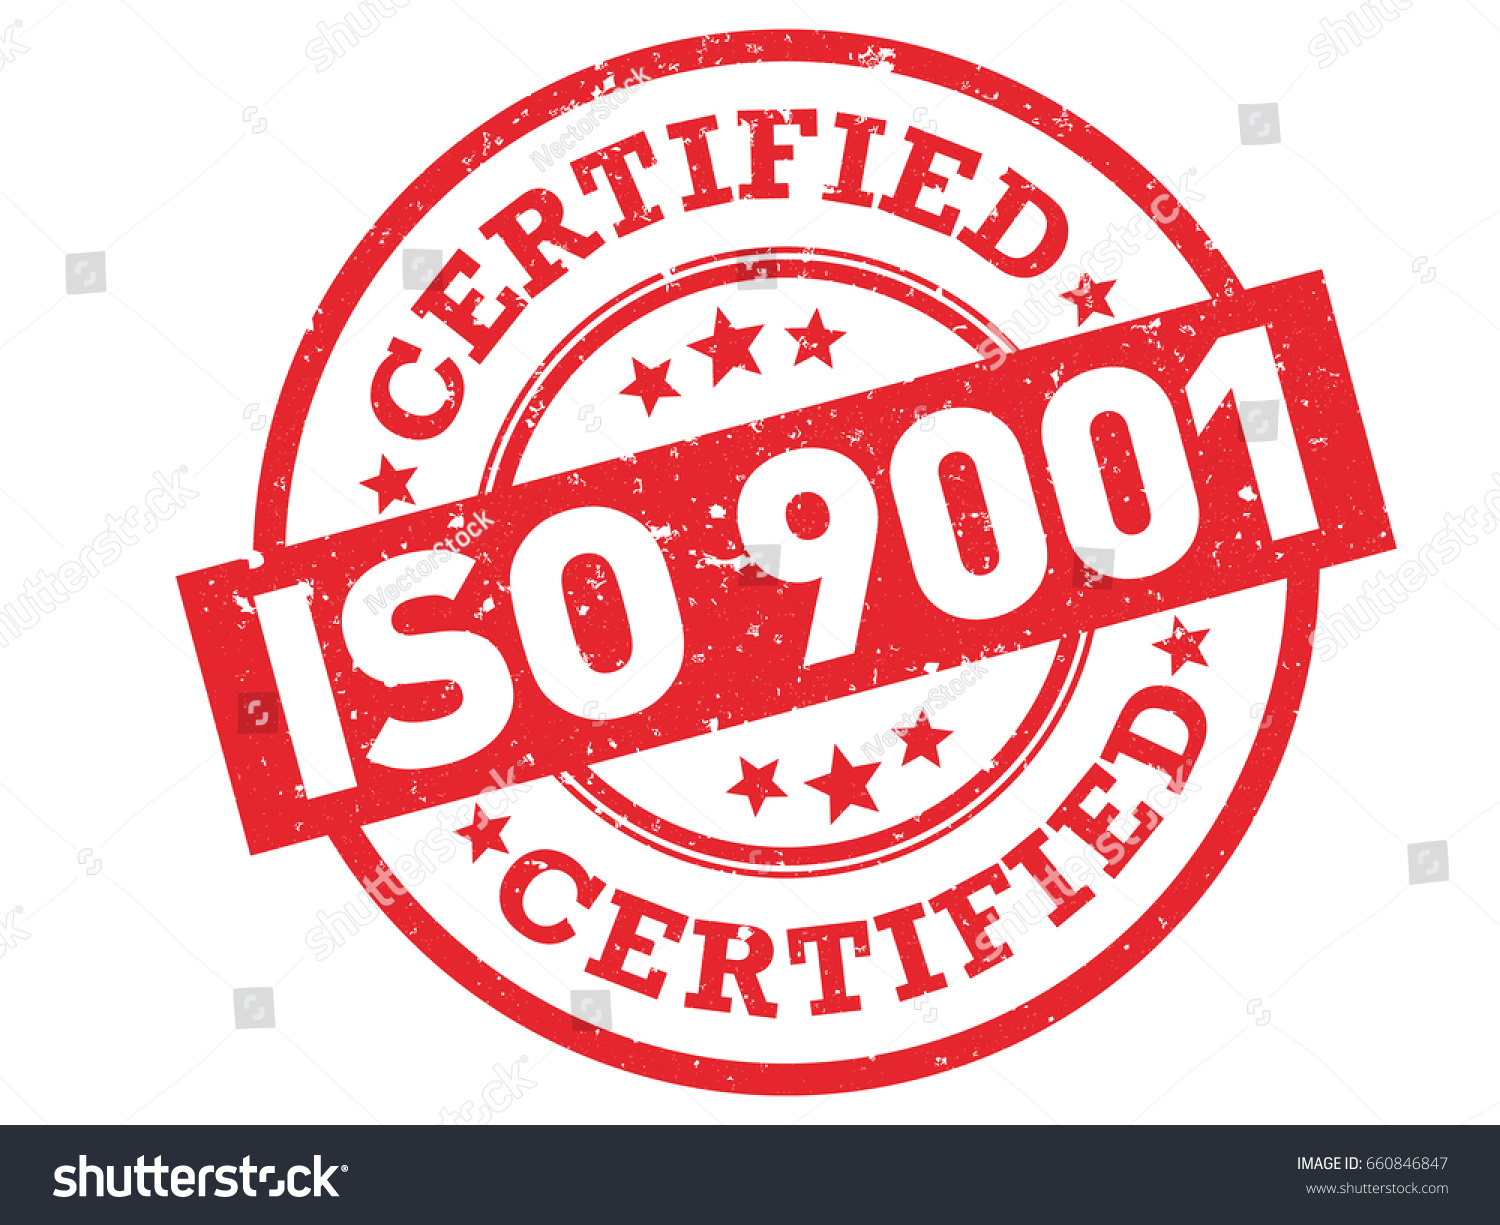 ISO 9001 Certified Red Rubber Stamp Vector Grunge Certification With Text